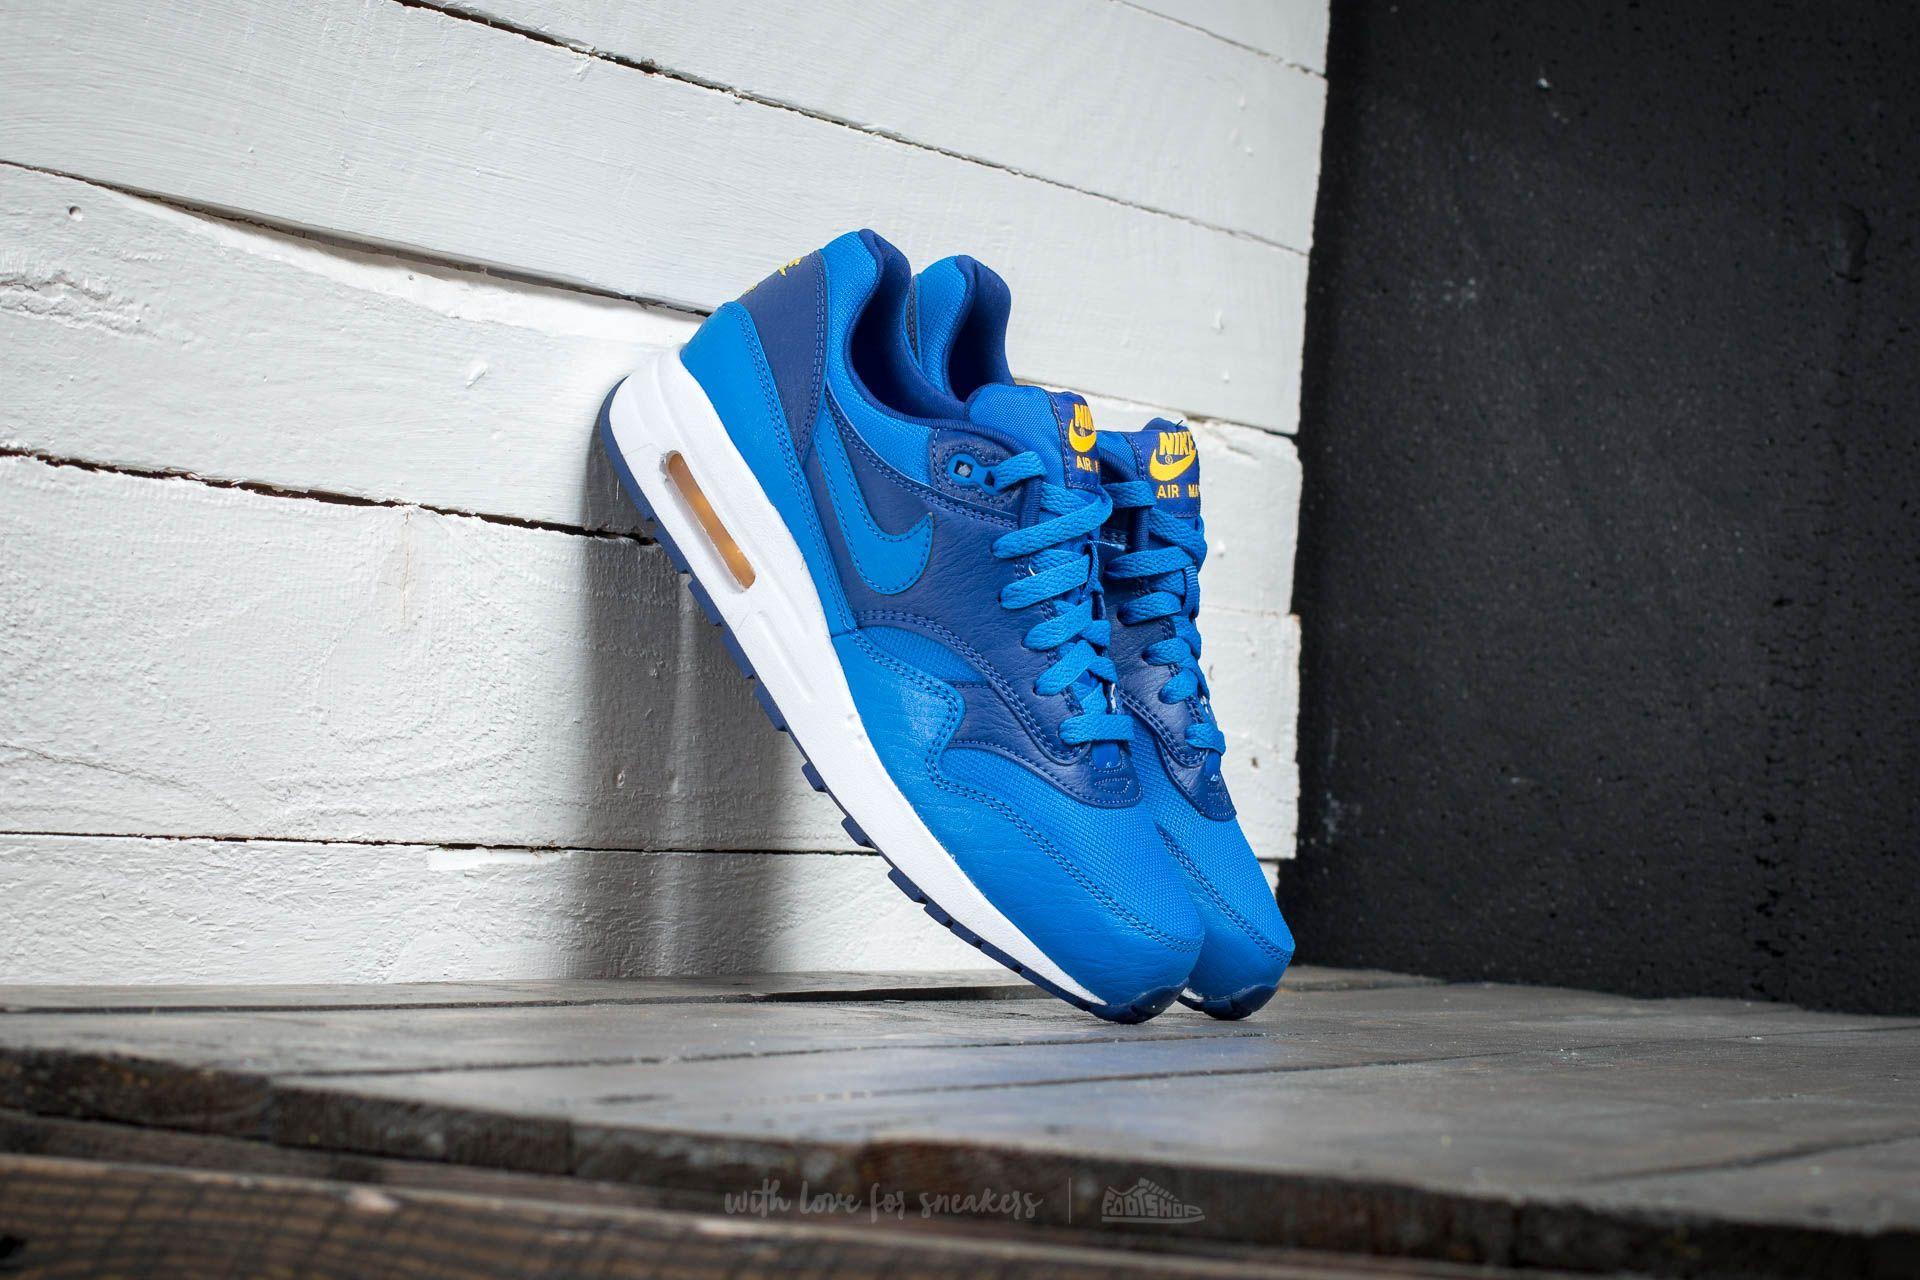 Nike Air Max 1 (GS) Hyper Coblat/ Hyper Cobalt-Deep Royal Bllue